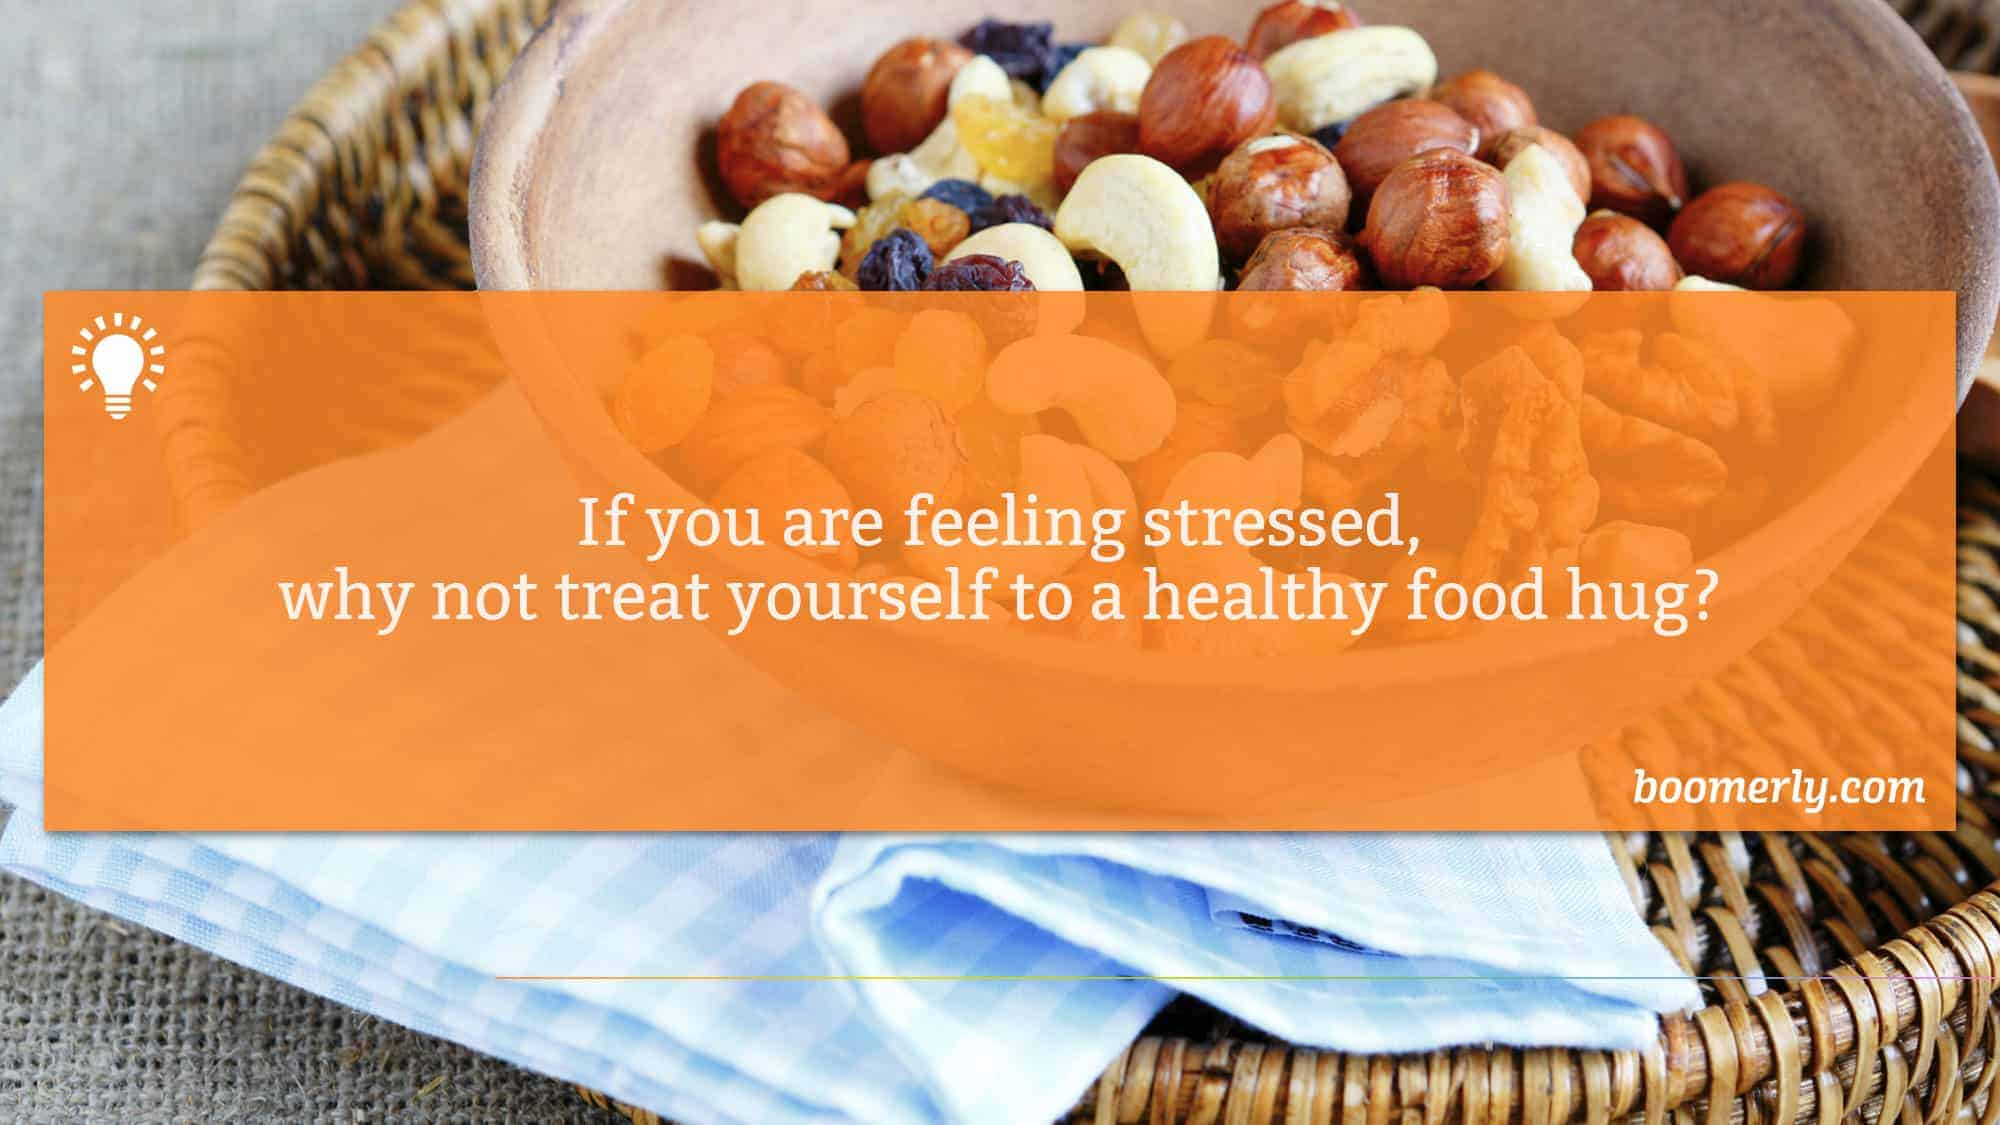 Healthy food - If you are feeling stressed, why not treat yourself to a healthy food hug?